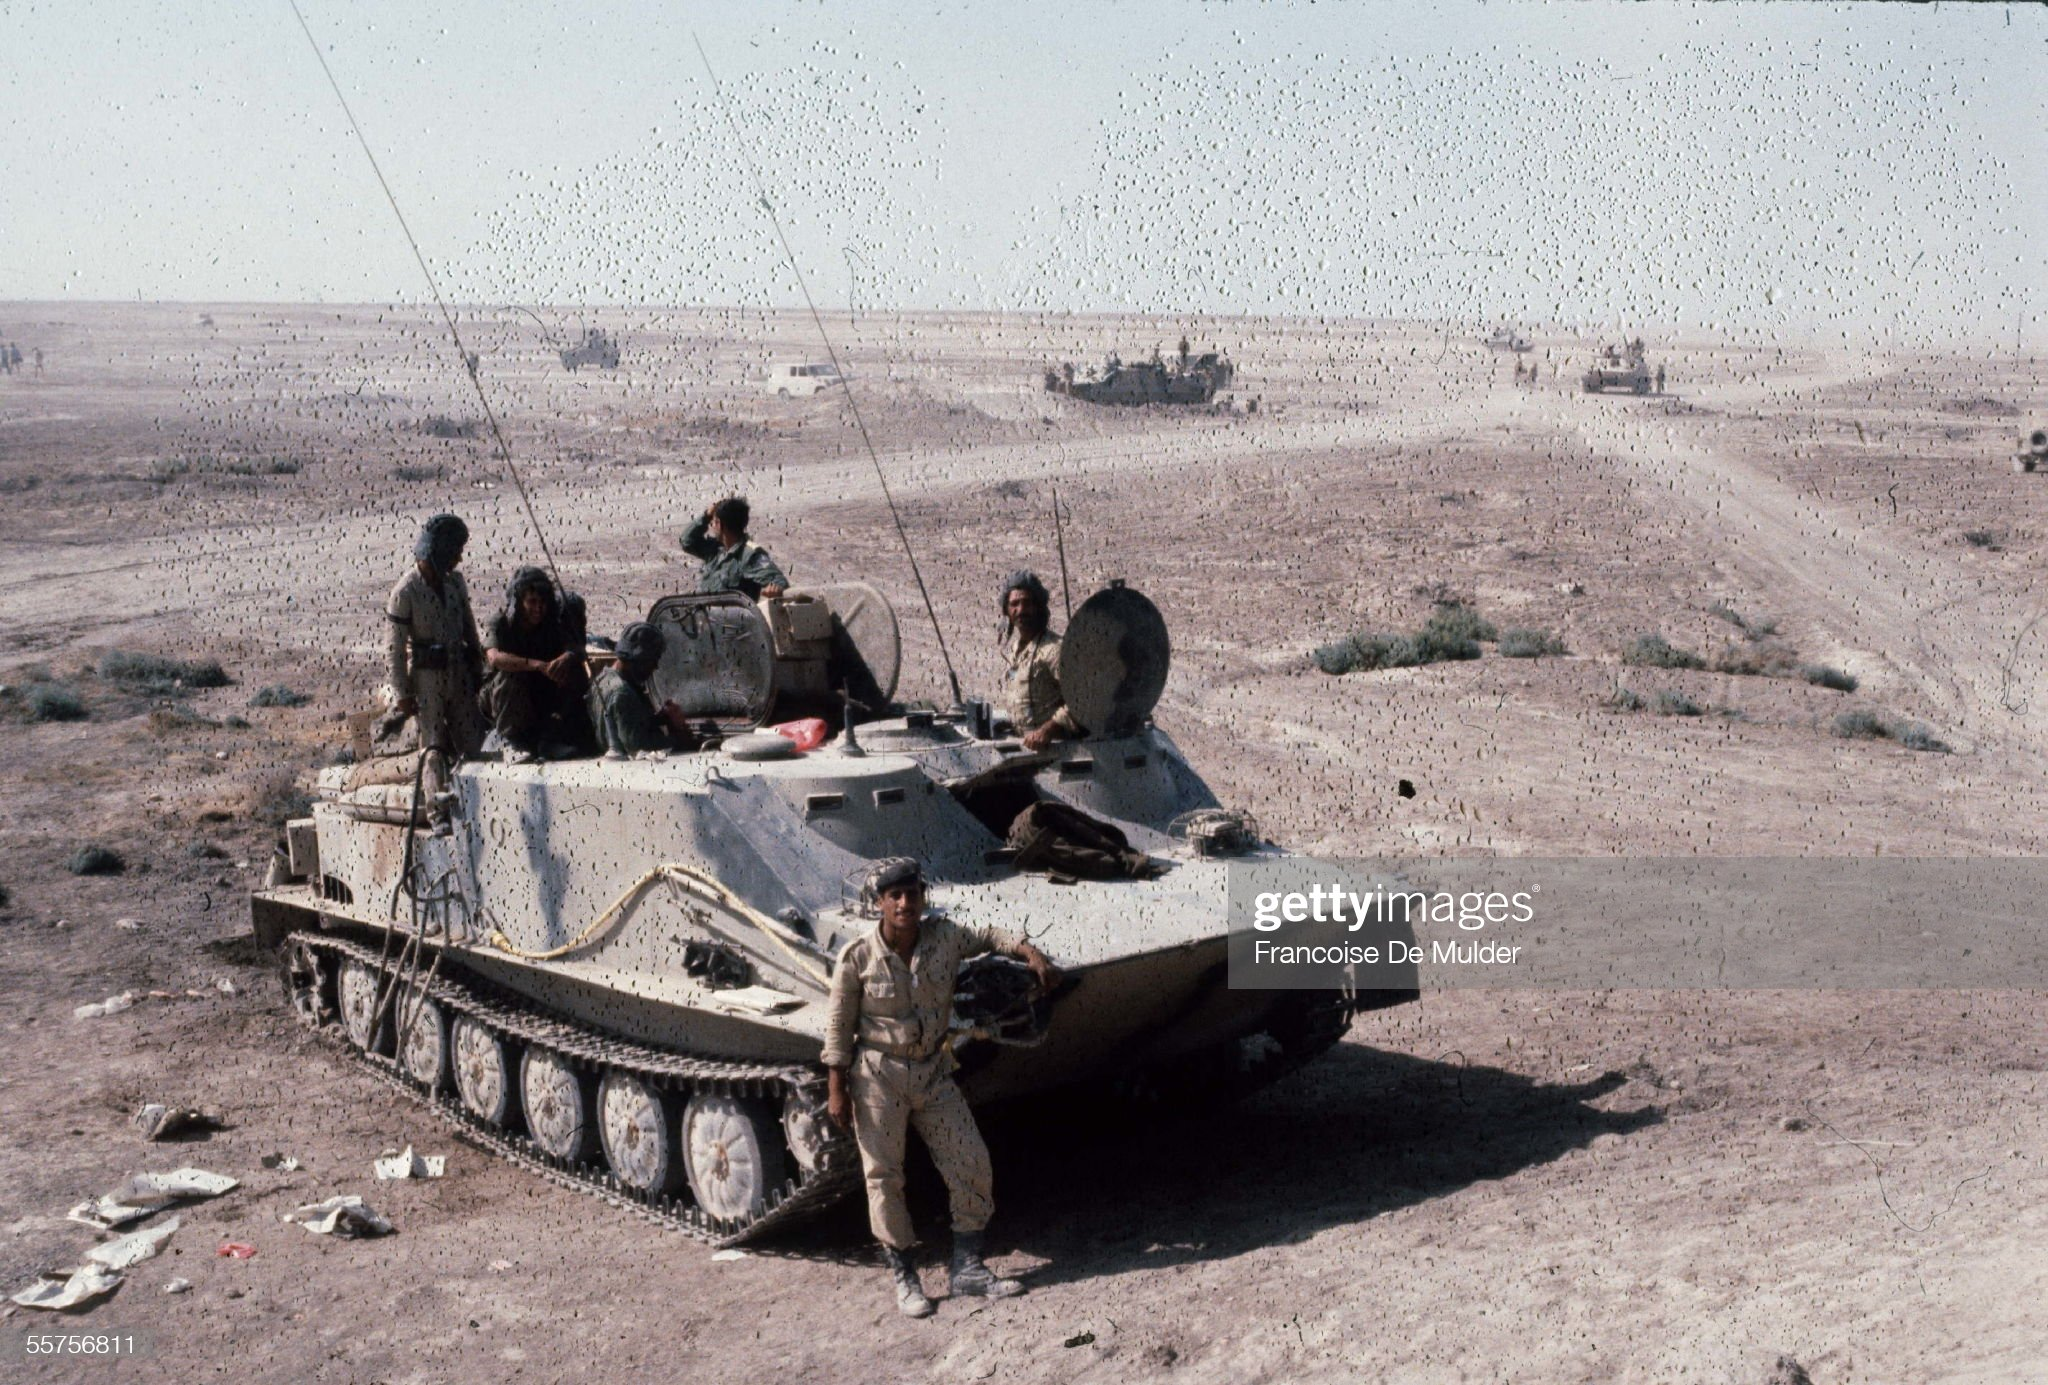 https://media.gettyimages.com/photos/war-iran-iraq-iraqi-tank-khorramchahr-in-october-1980-fdm79619-picture-id55756811?s=2048x2048